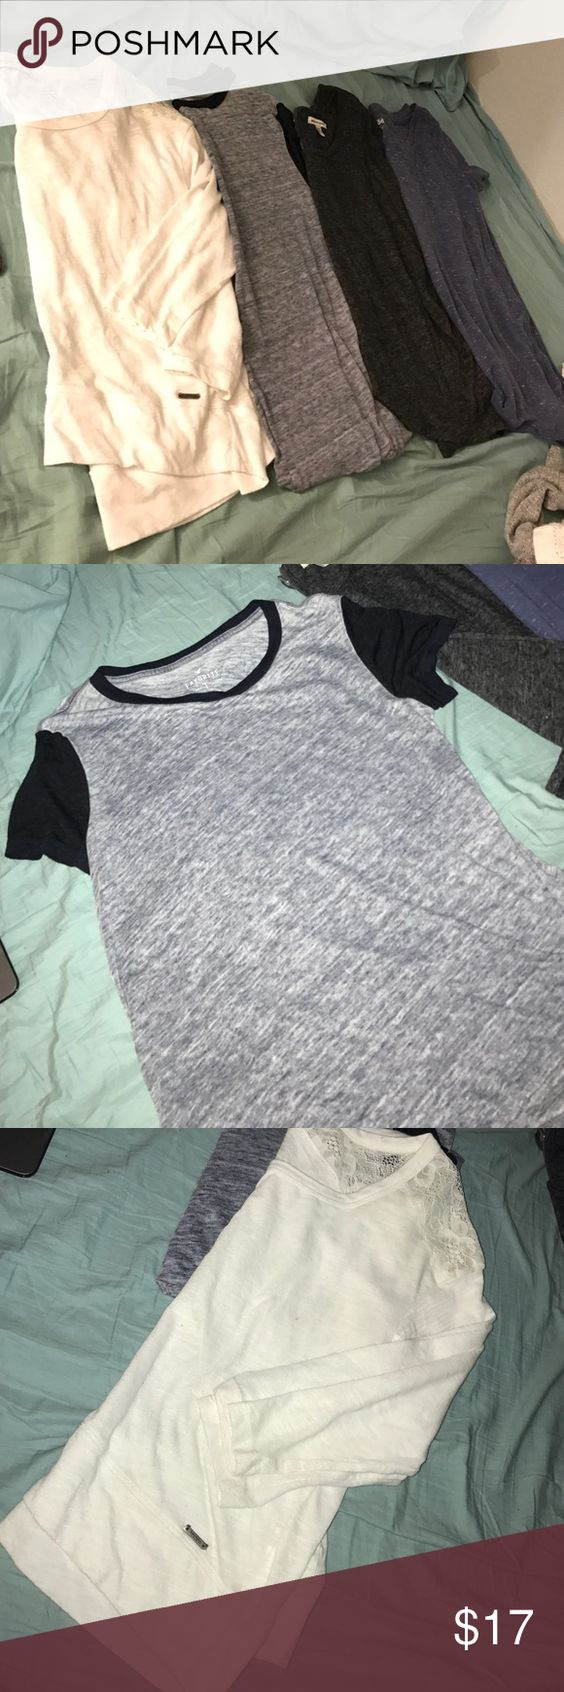 Shirt bundle All fit xs, Abercrombie and American eagle brands. All in great condition! Open for reasonable offers! American Eagle Outfitters Tops